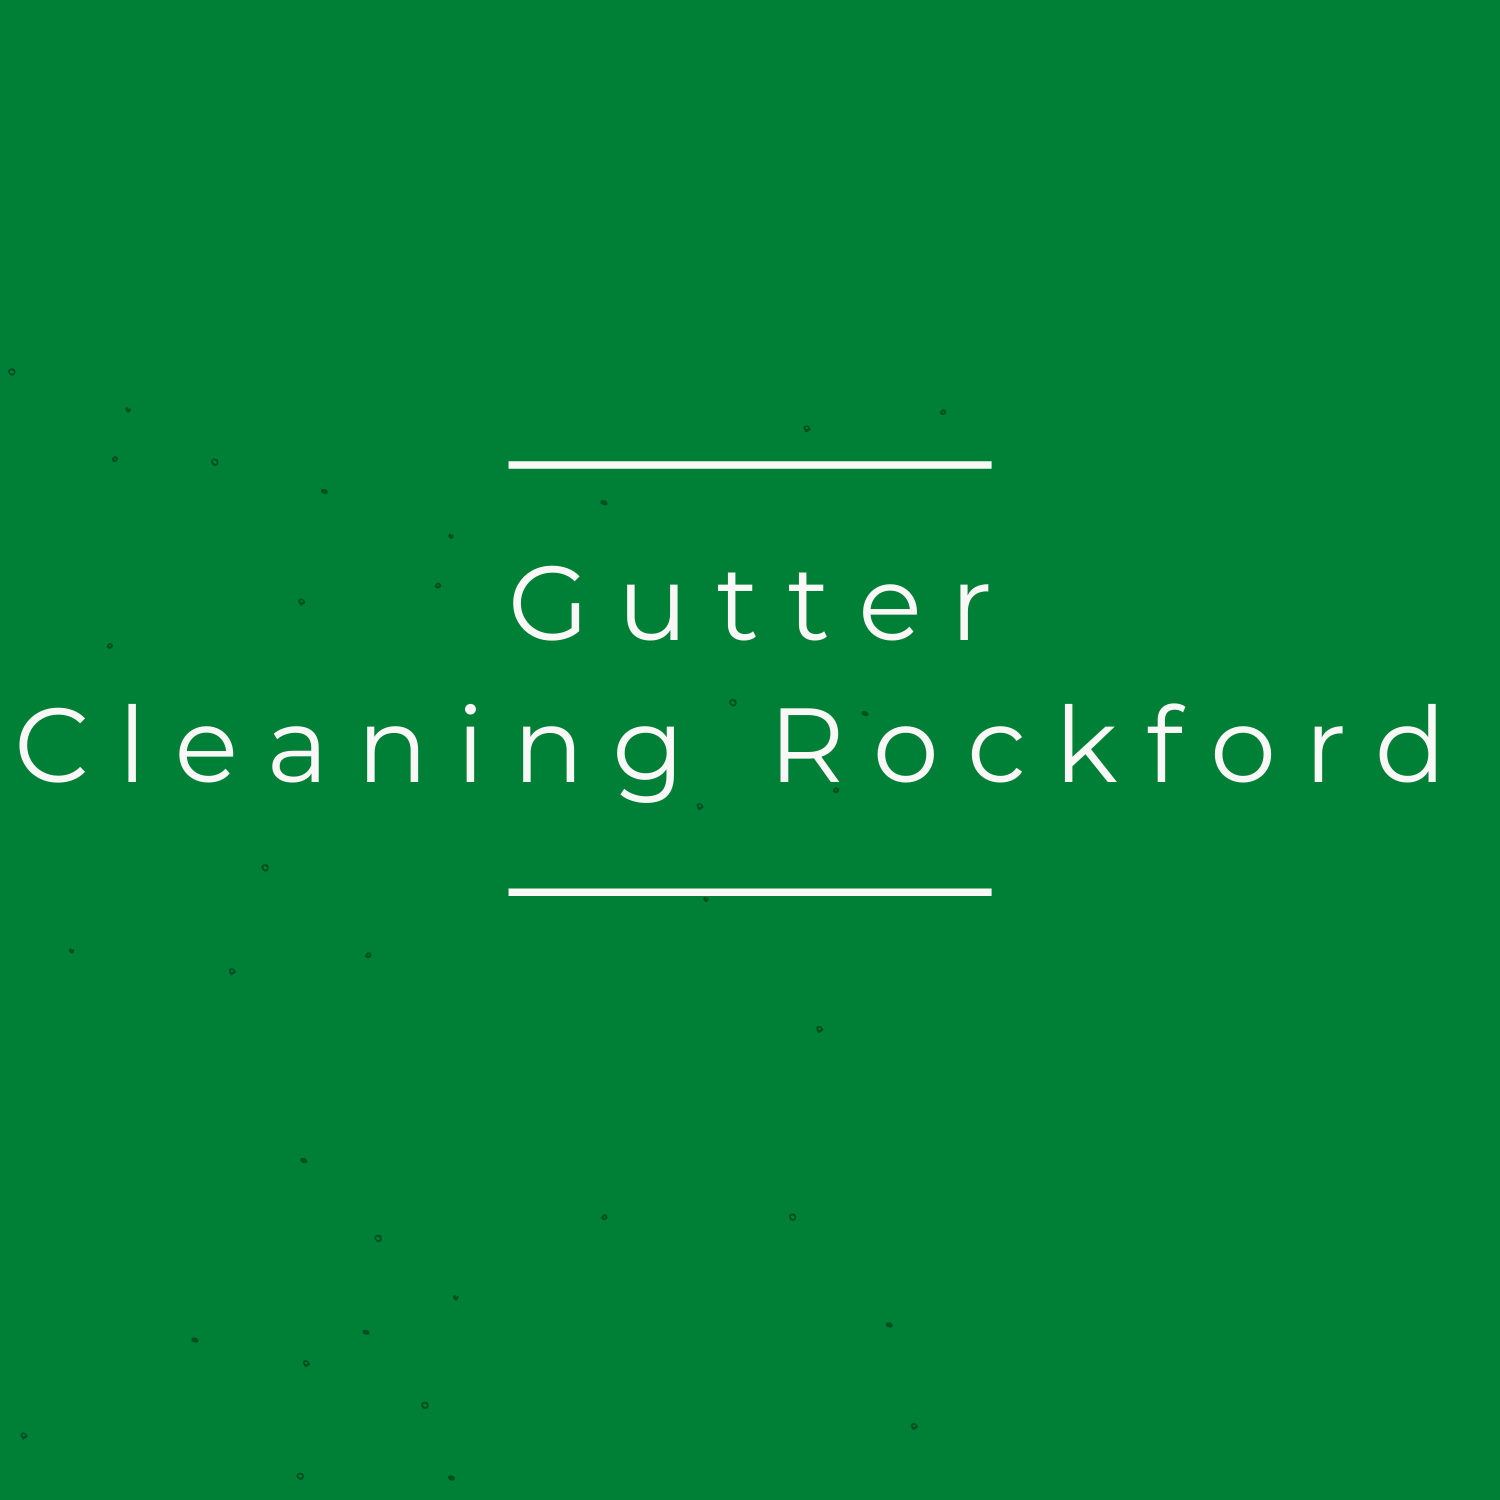 Gutter Cleaning Rockford IL